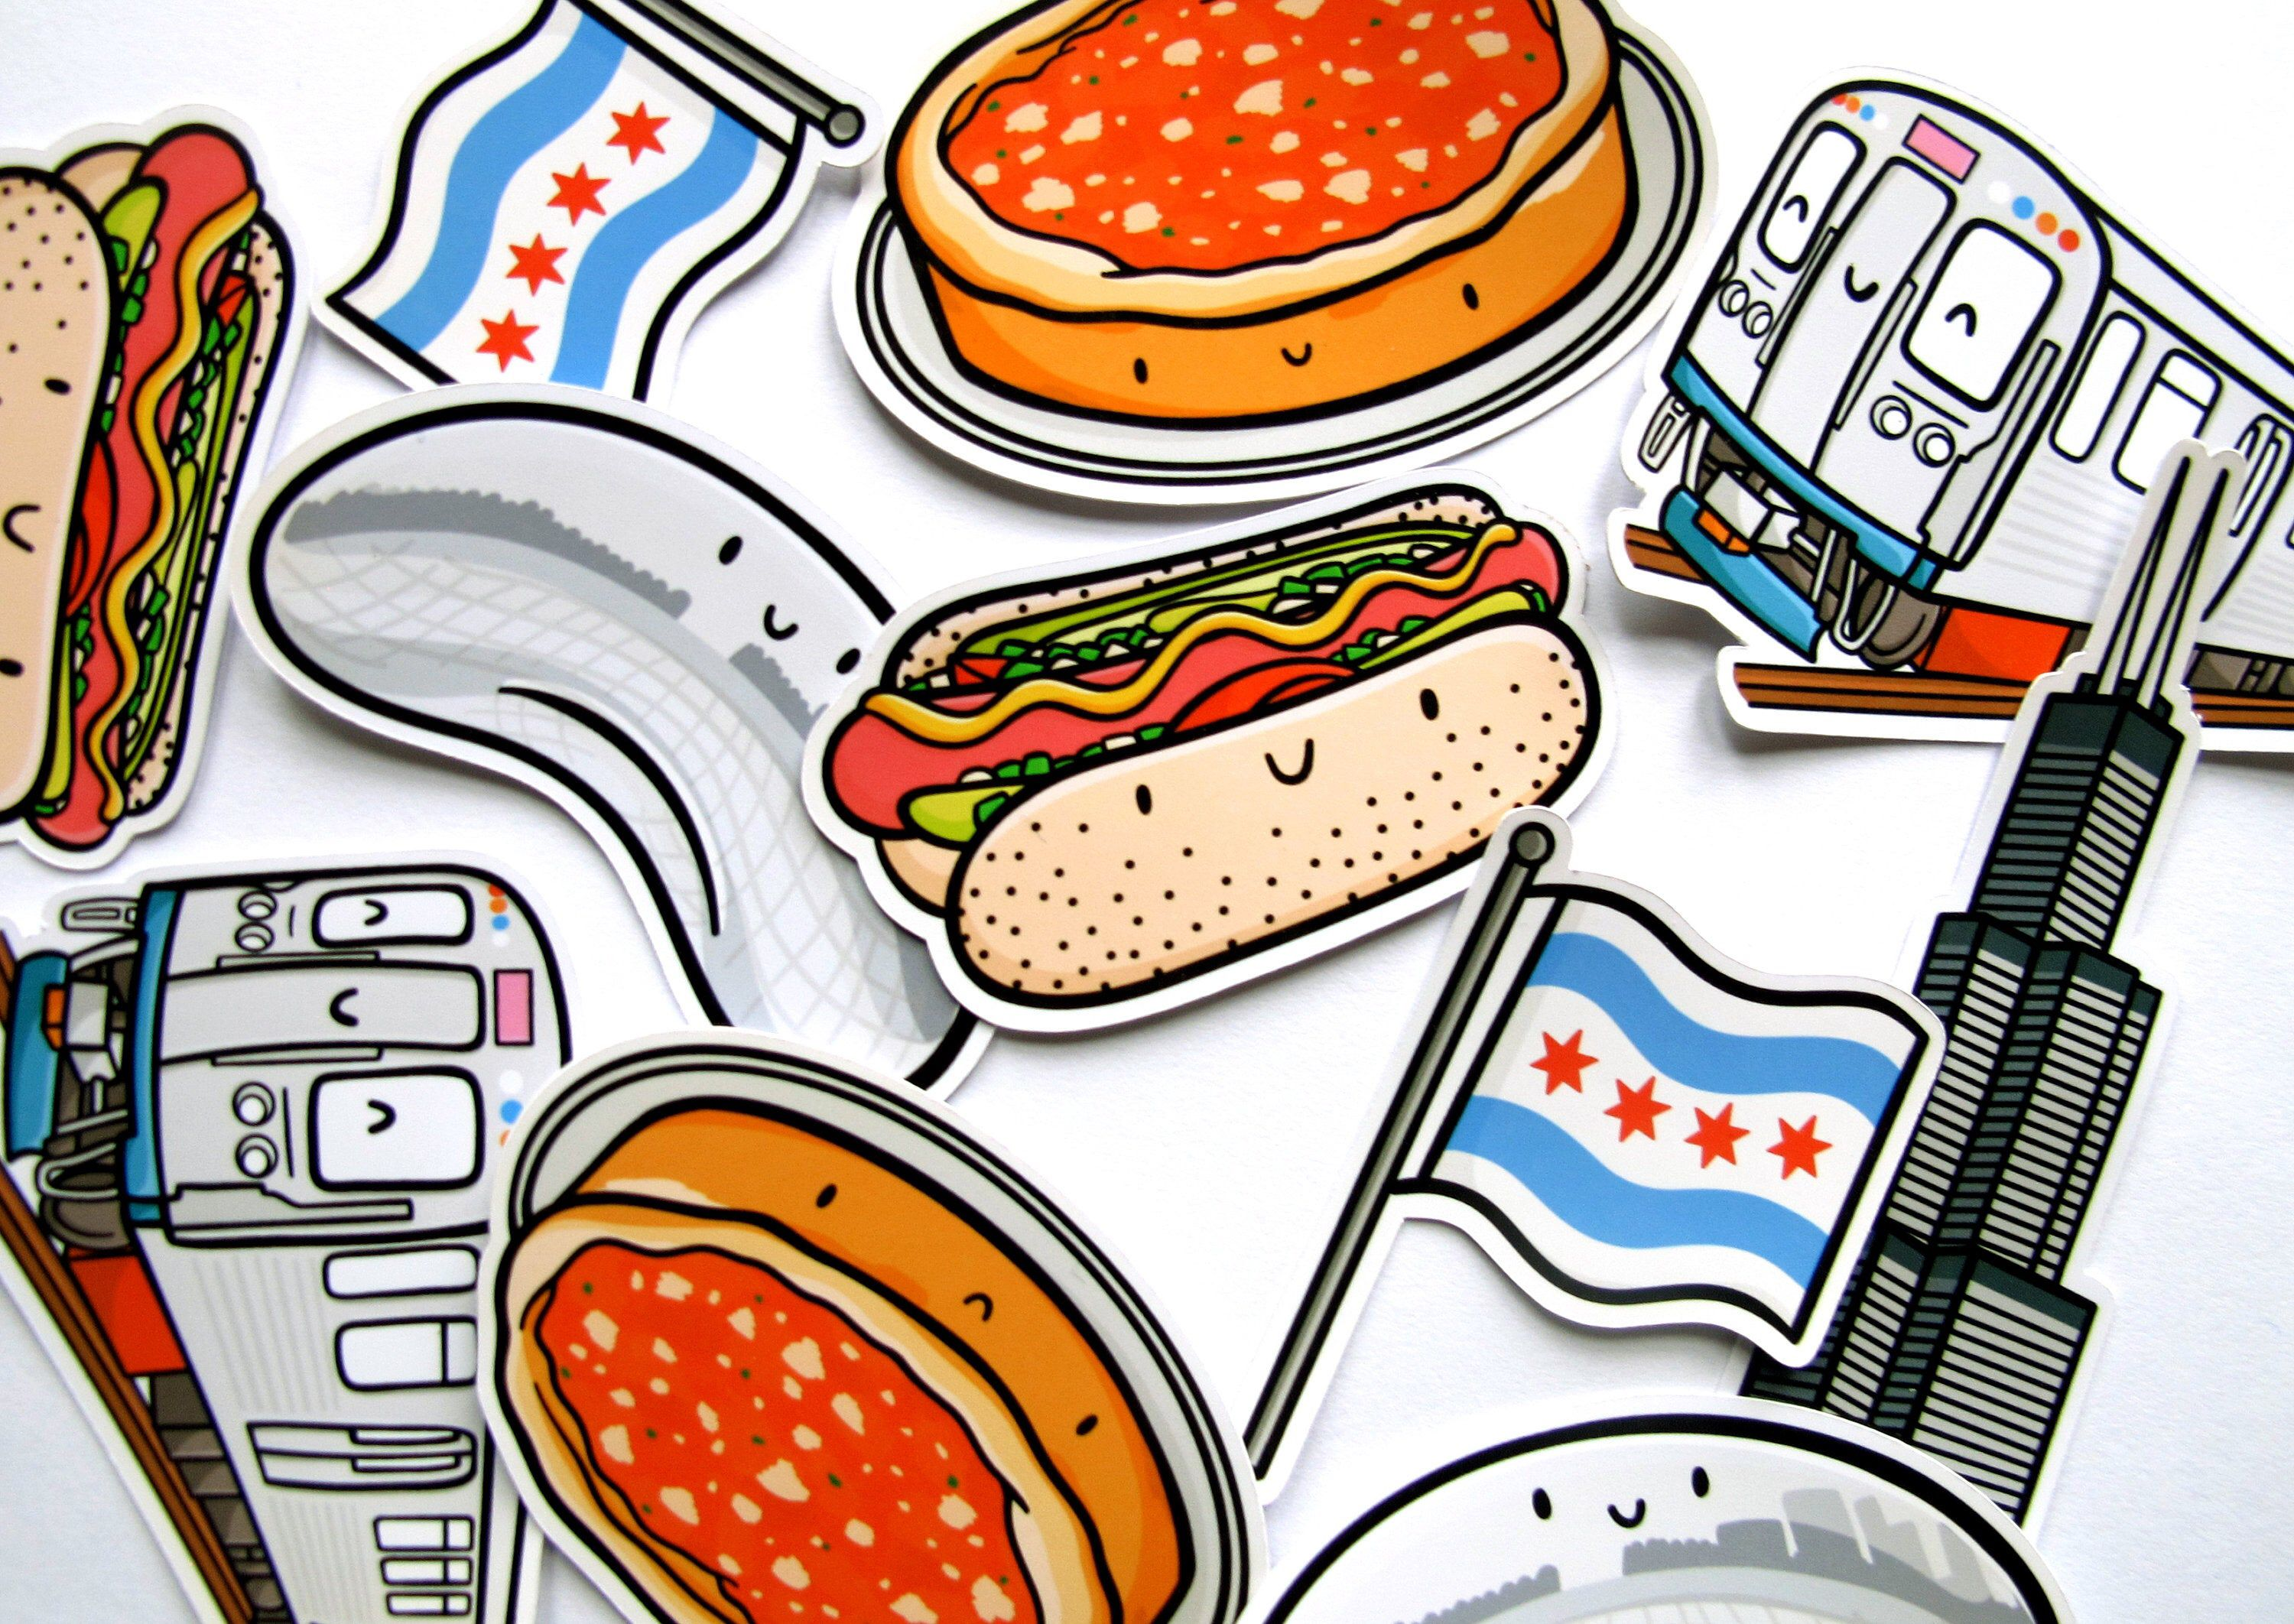 Chicago Sticker Pack Chicago Gifts The Bean Illinois Chicago Style Pizza Chicago Hotdog Sears Tower Chicago Gifts Chicago Style Pizza Chicago Style [ 2124 x 3000 Pixel ]